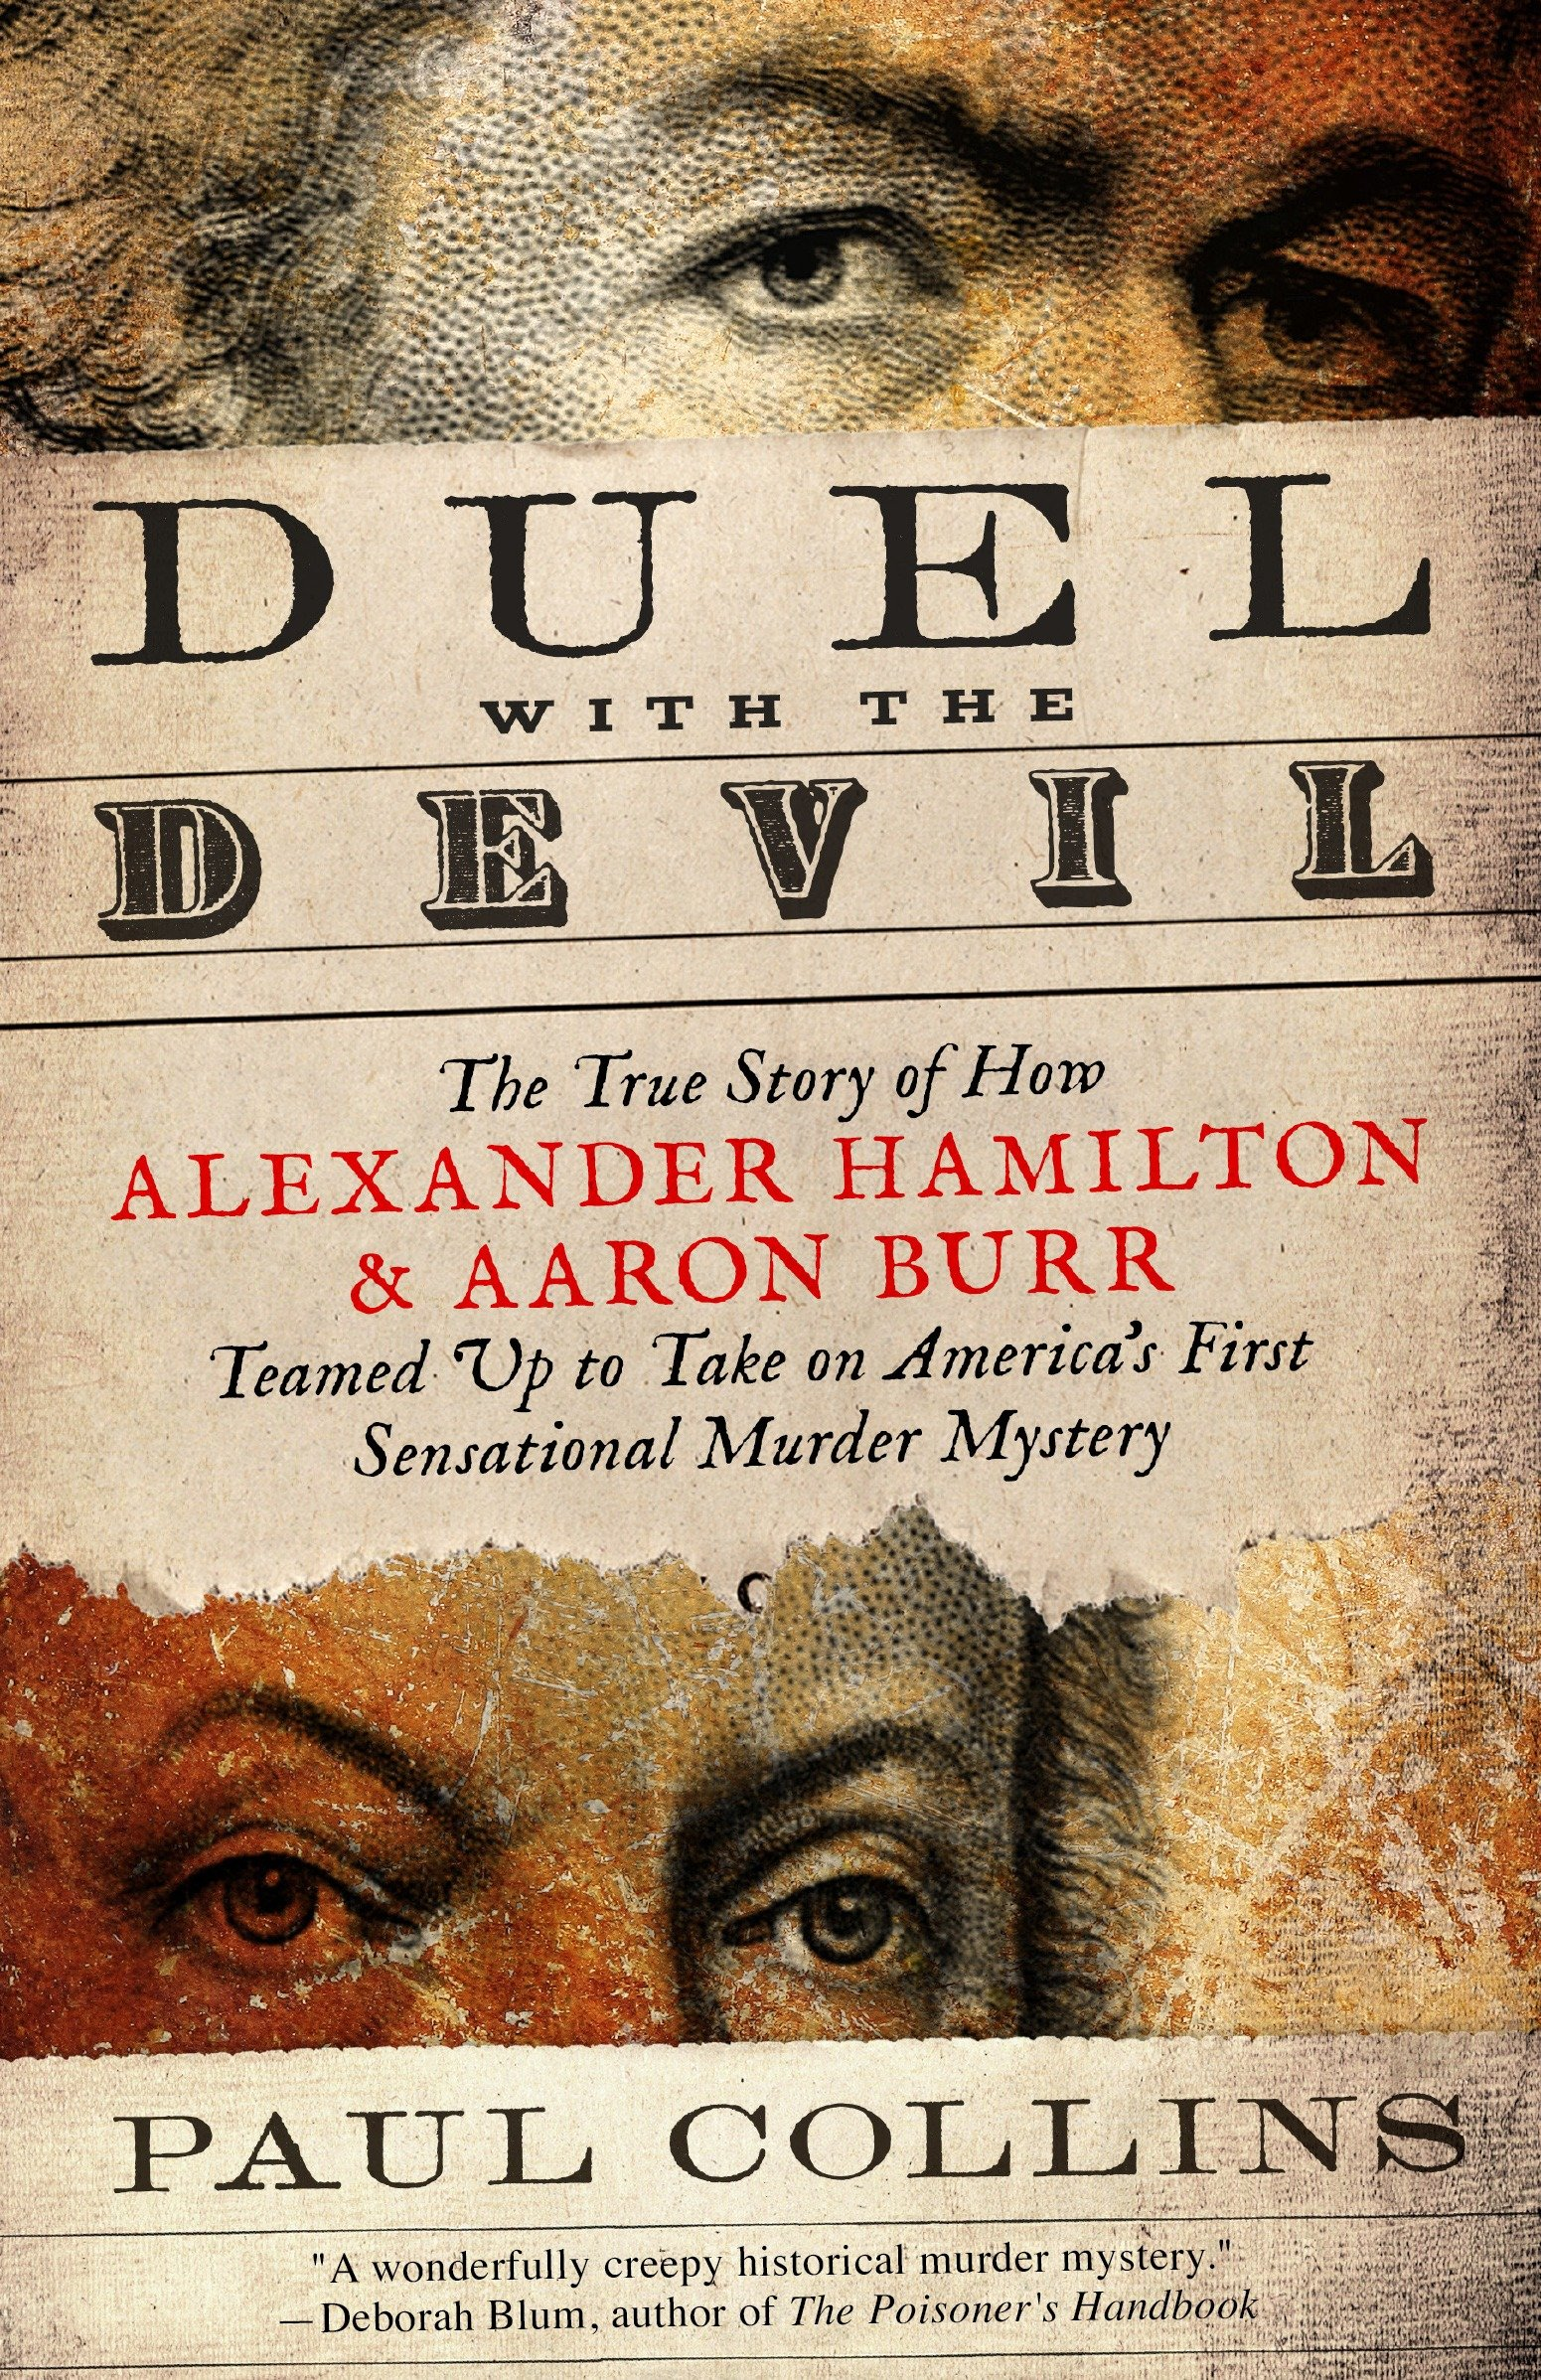 Duel with the Devil The True Story of How Alexander Hamilton and Aaron Burr Teamed Up to Take on America's First Sensational Murder Mystery